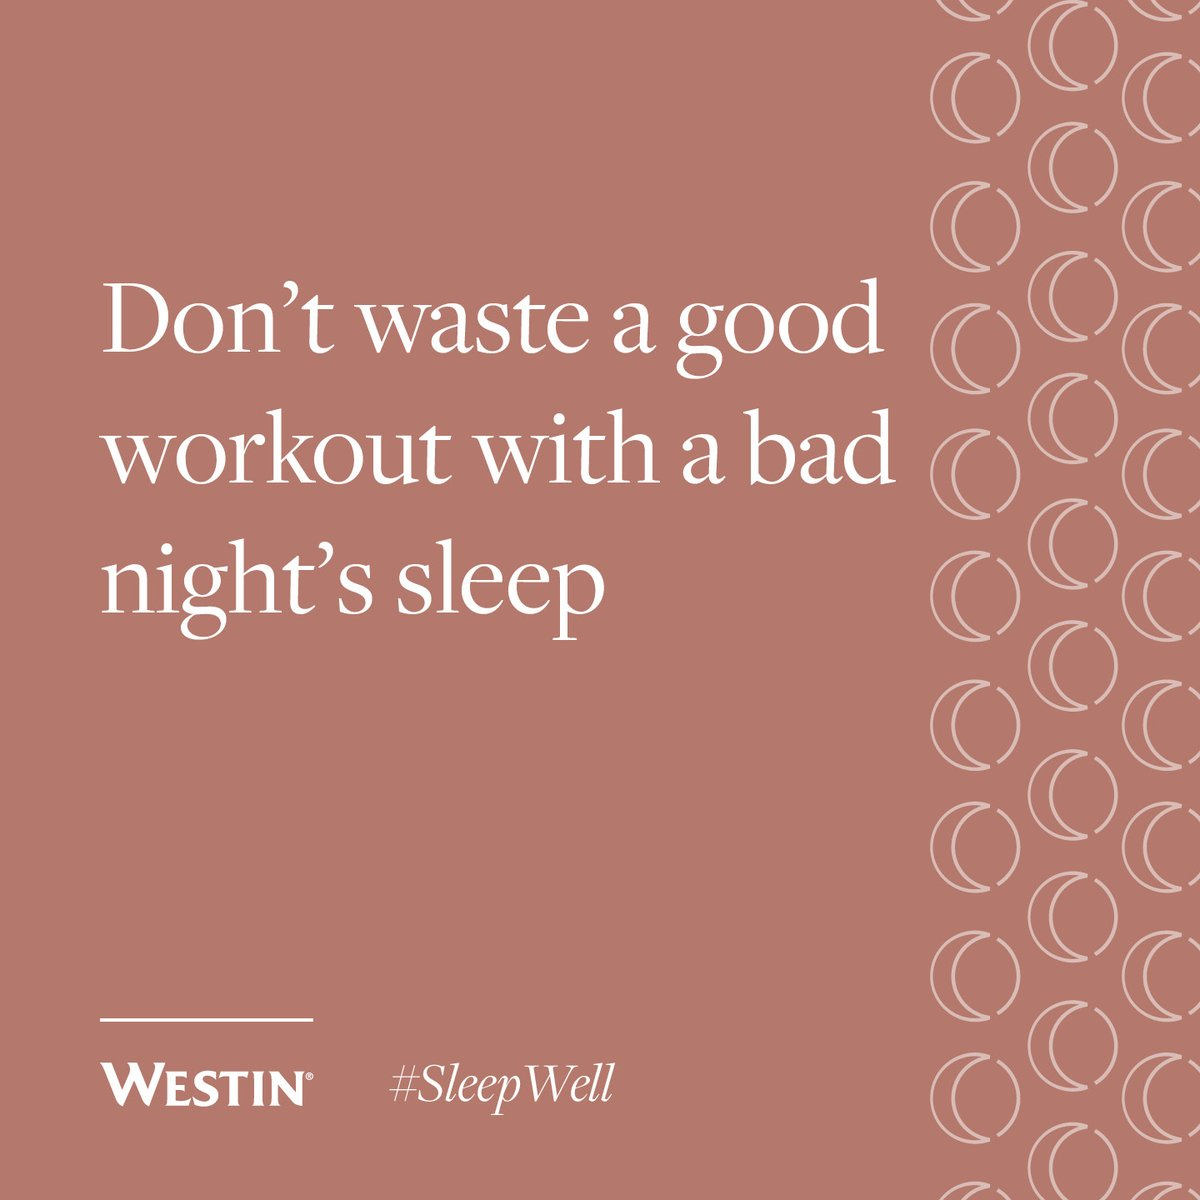 Rest is crucial to recovery. #SleepWell